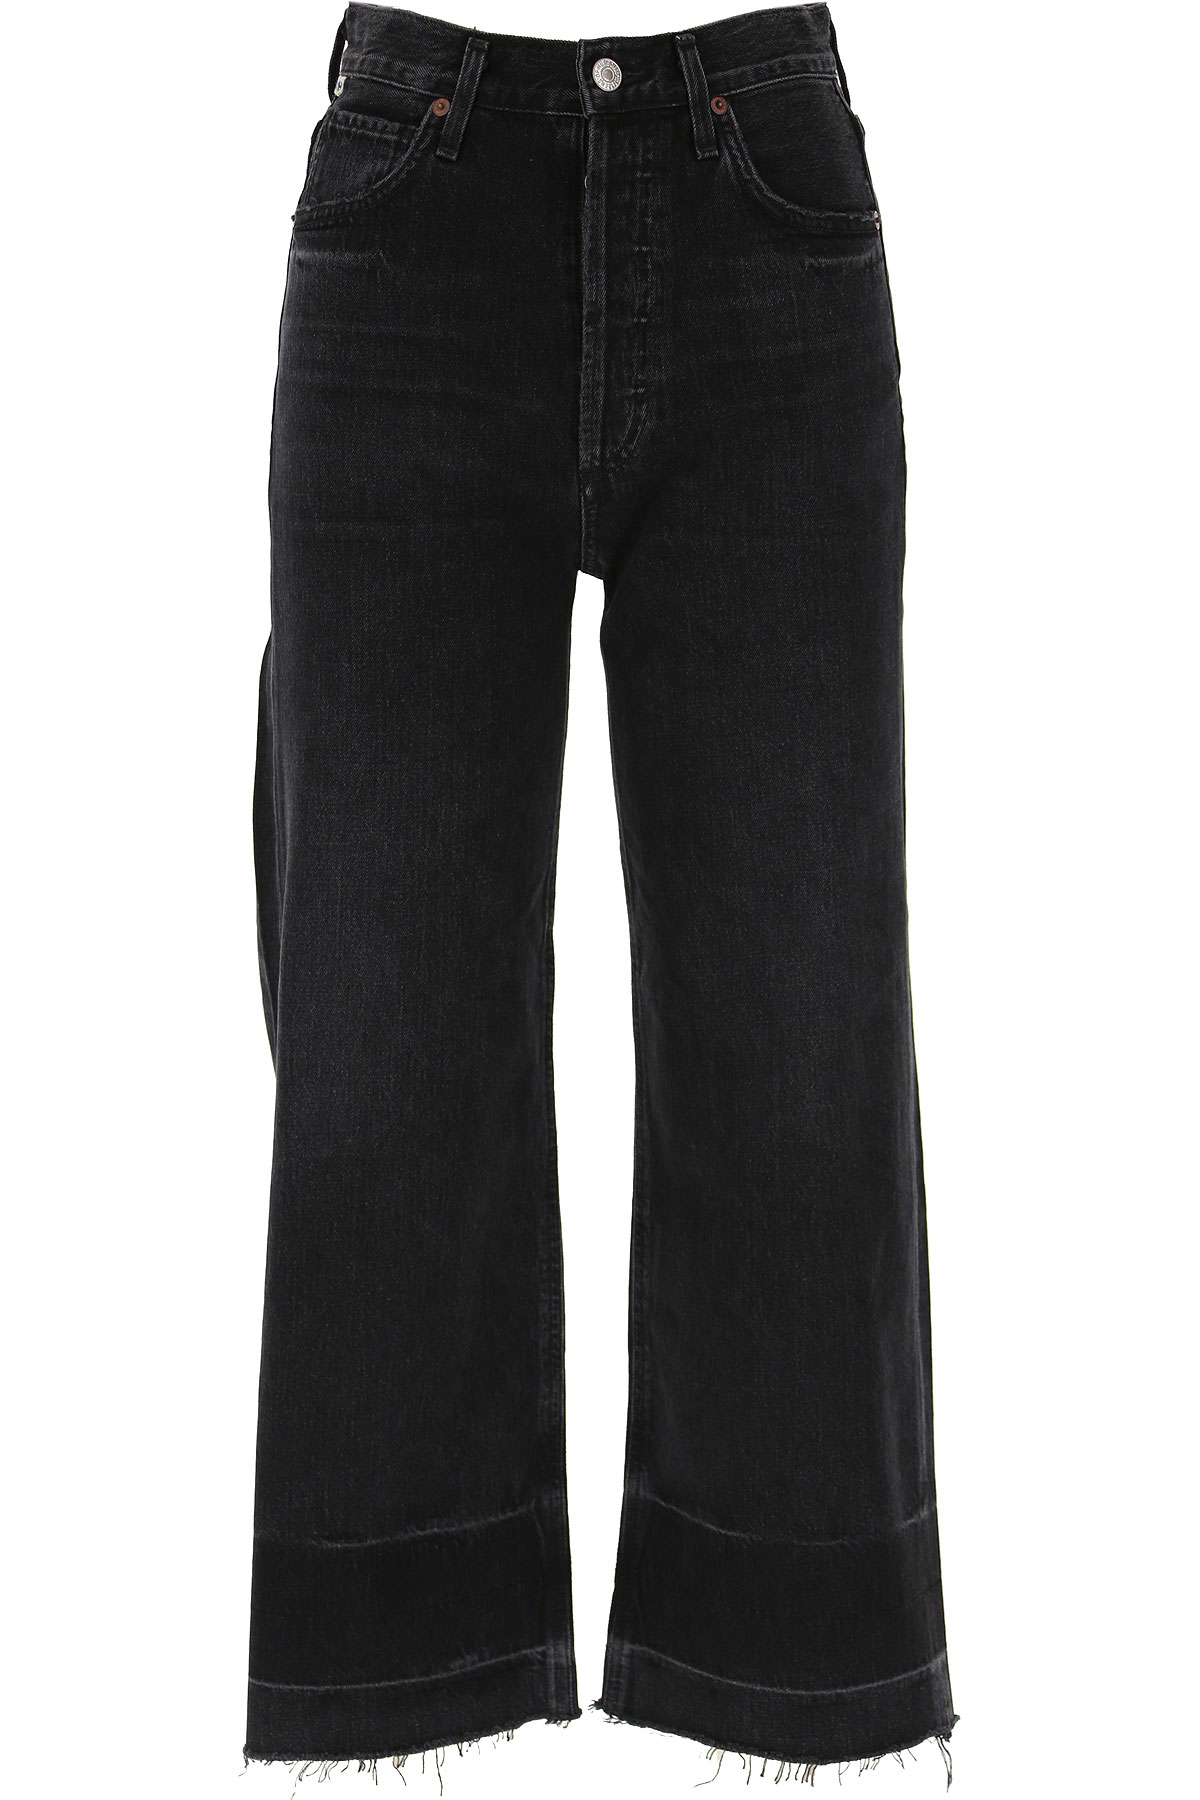 Citizens of Humanity Jeans On Sale, Black, Cotton, 2019, 24 25 26 27